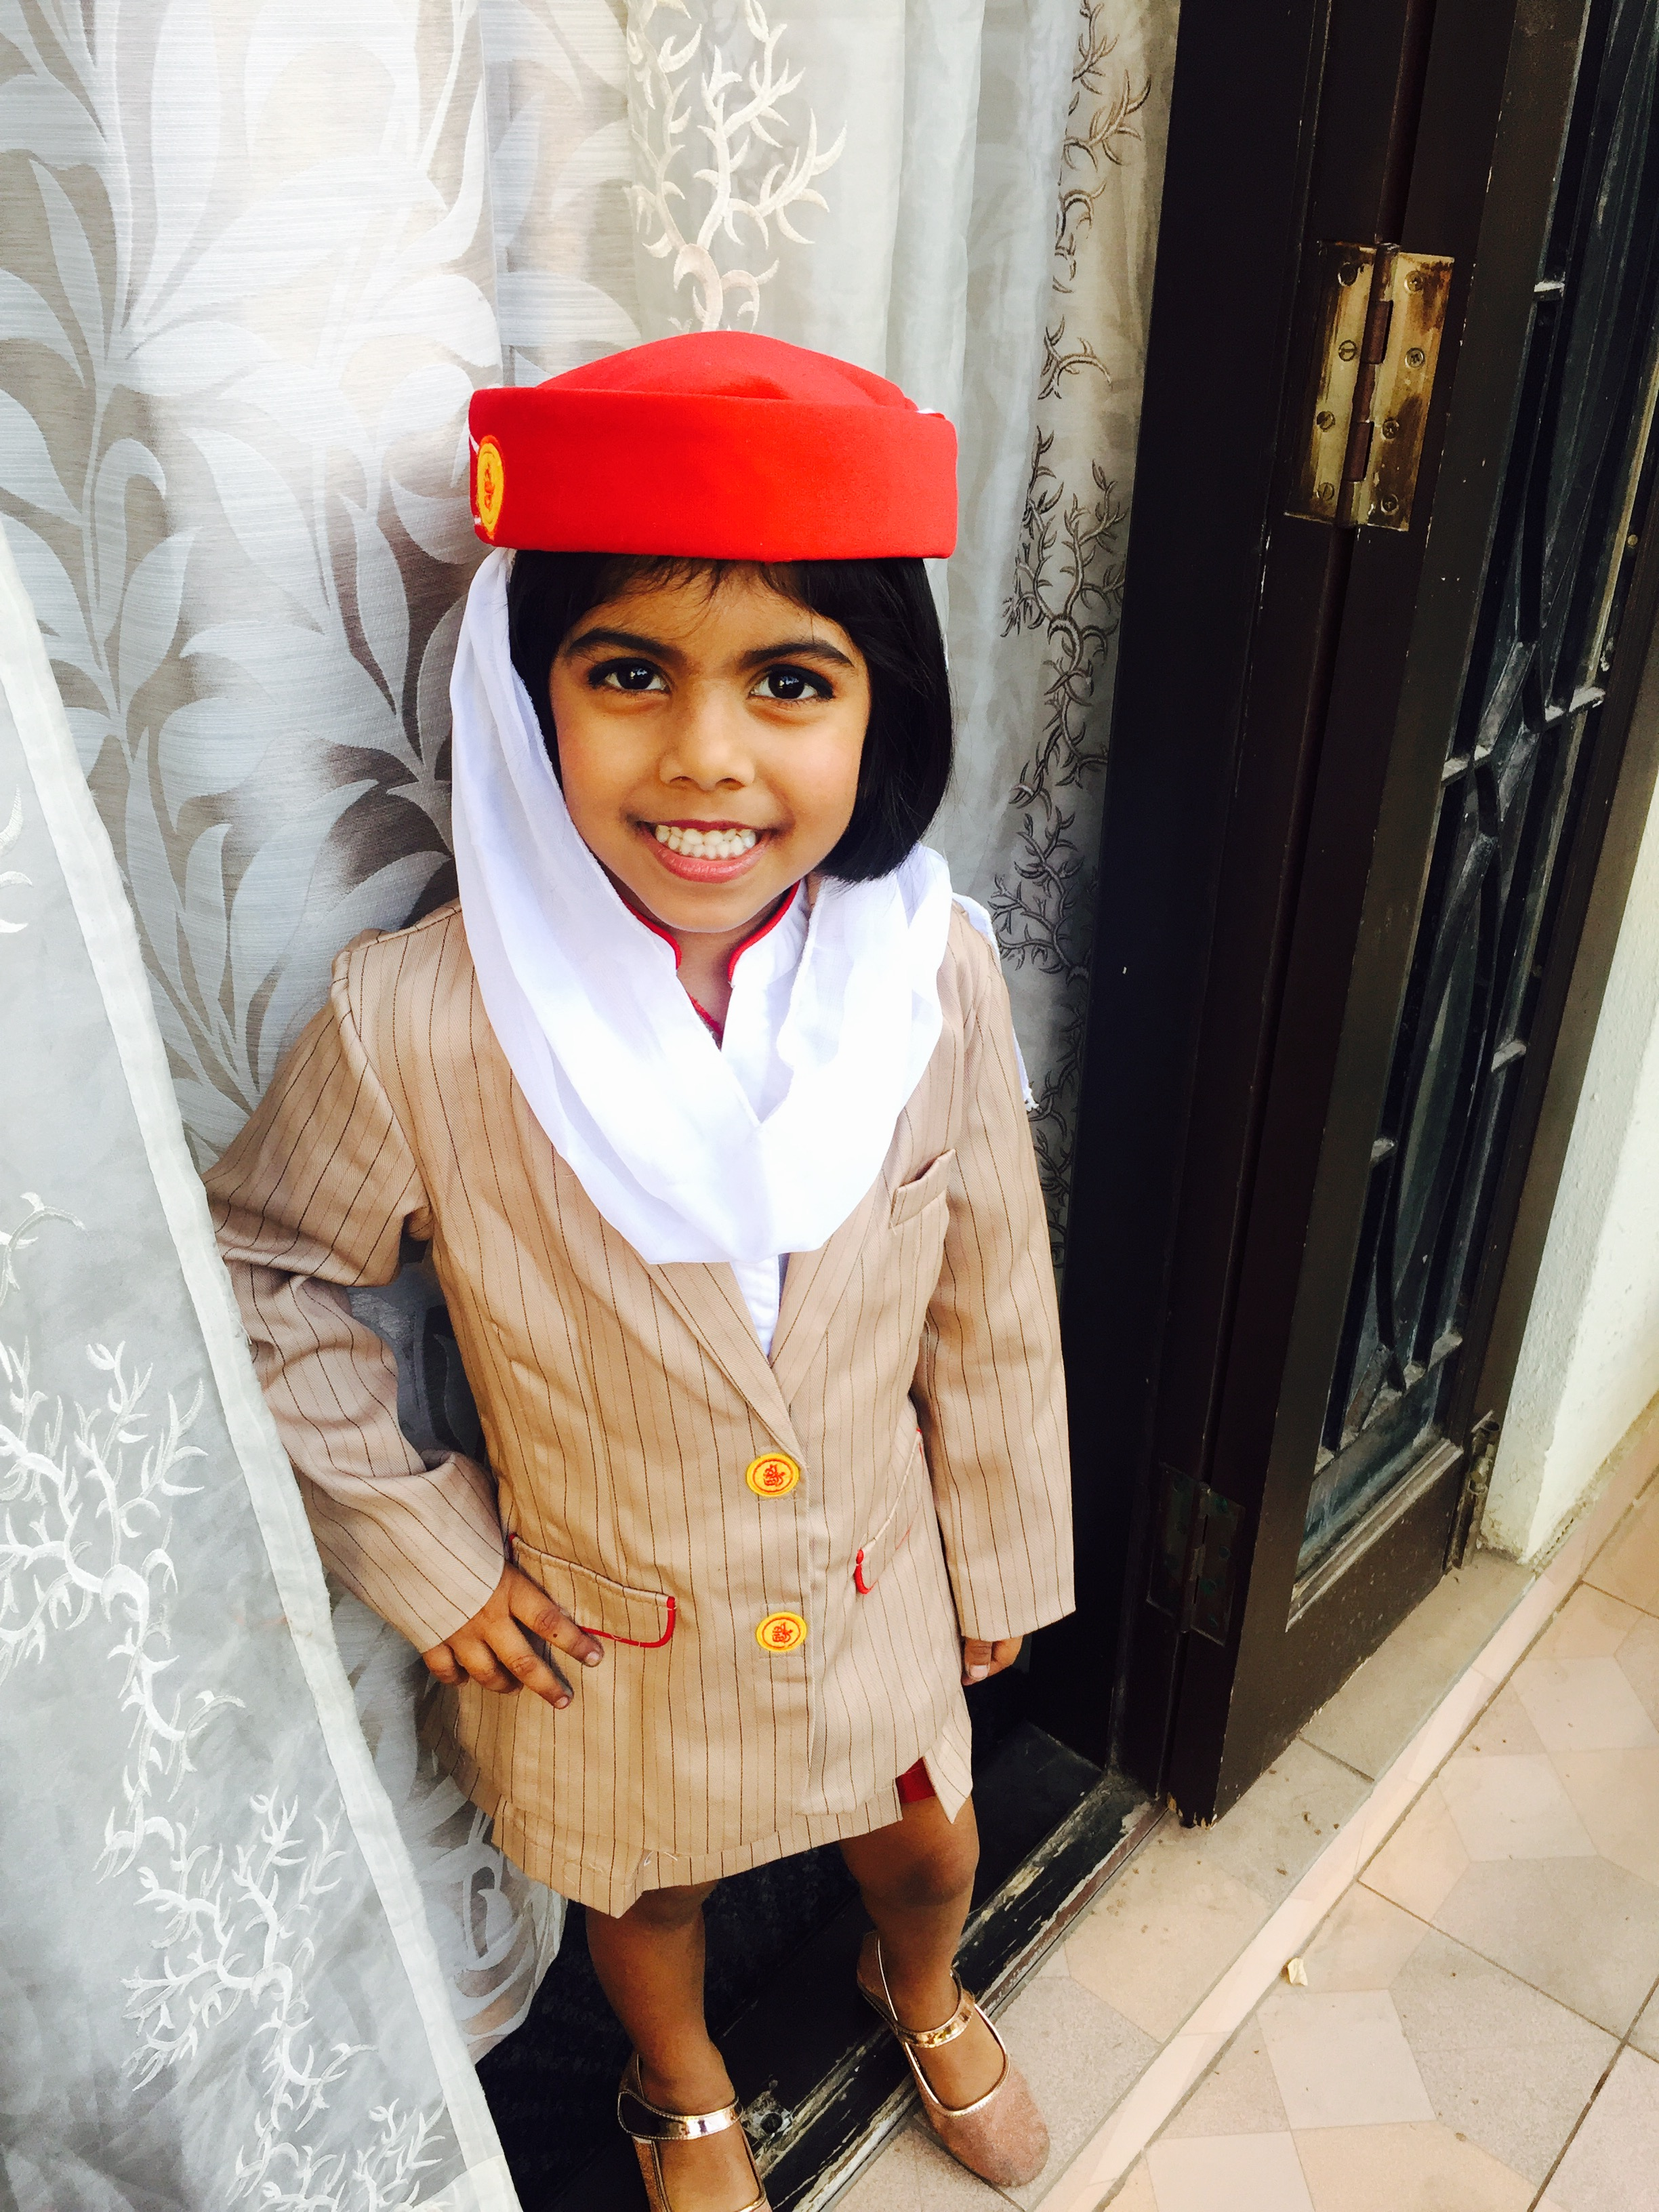 f67abd54829 Emirates Cabin Crew and Pilot Uniform for Kids | MommyswallMommyswall